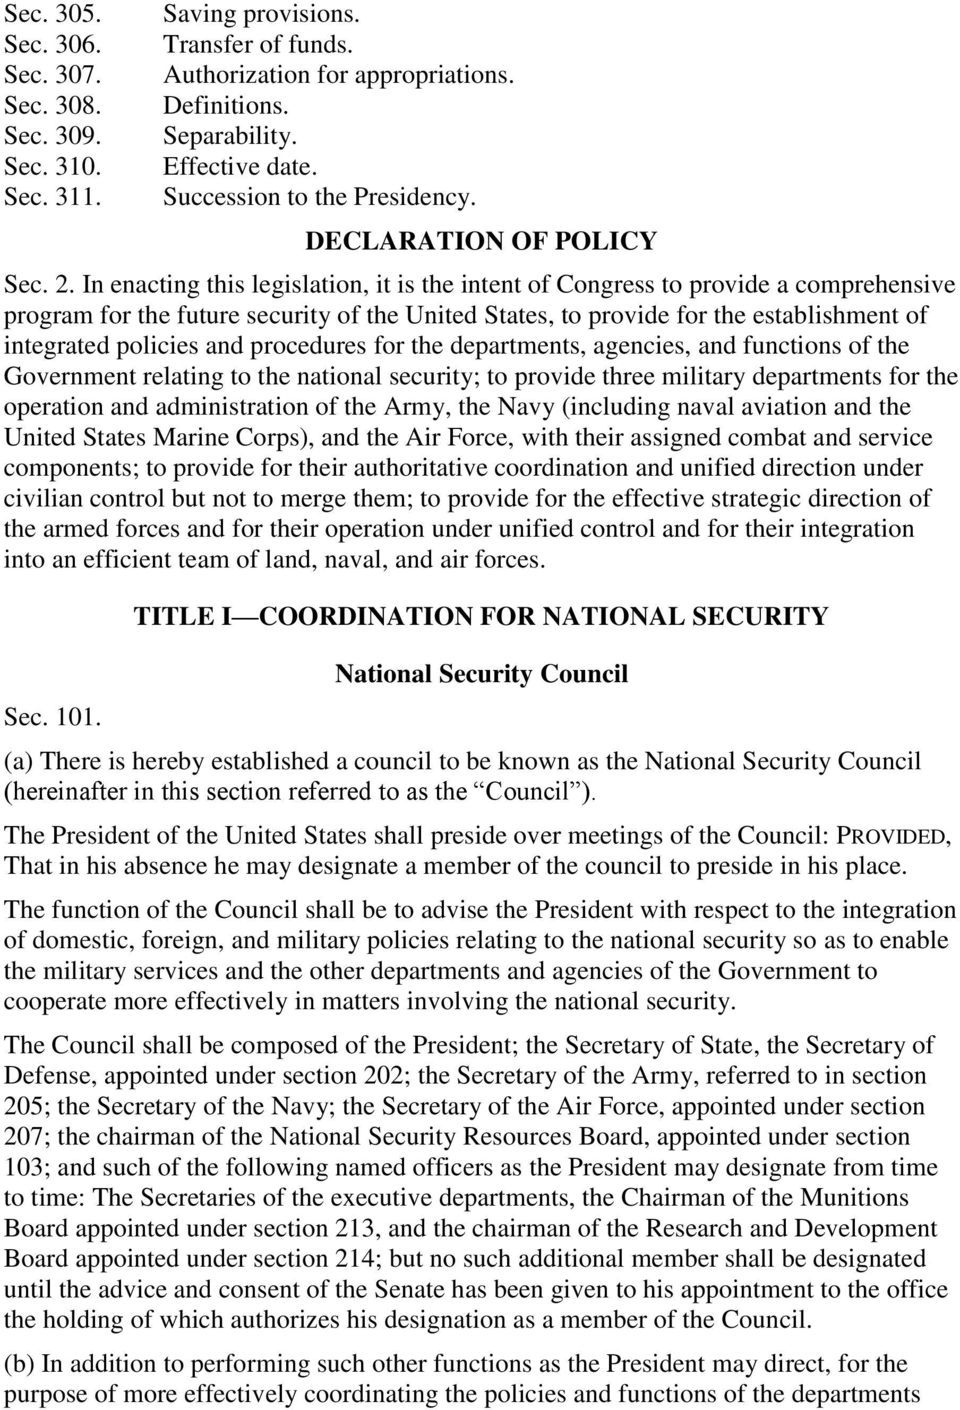 In enacting this legislation, it is the intent of Congress to provide a comprehensive program for the future security of the United States, to provide for the establishment of integrated policies and